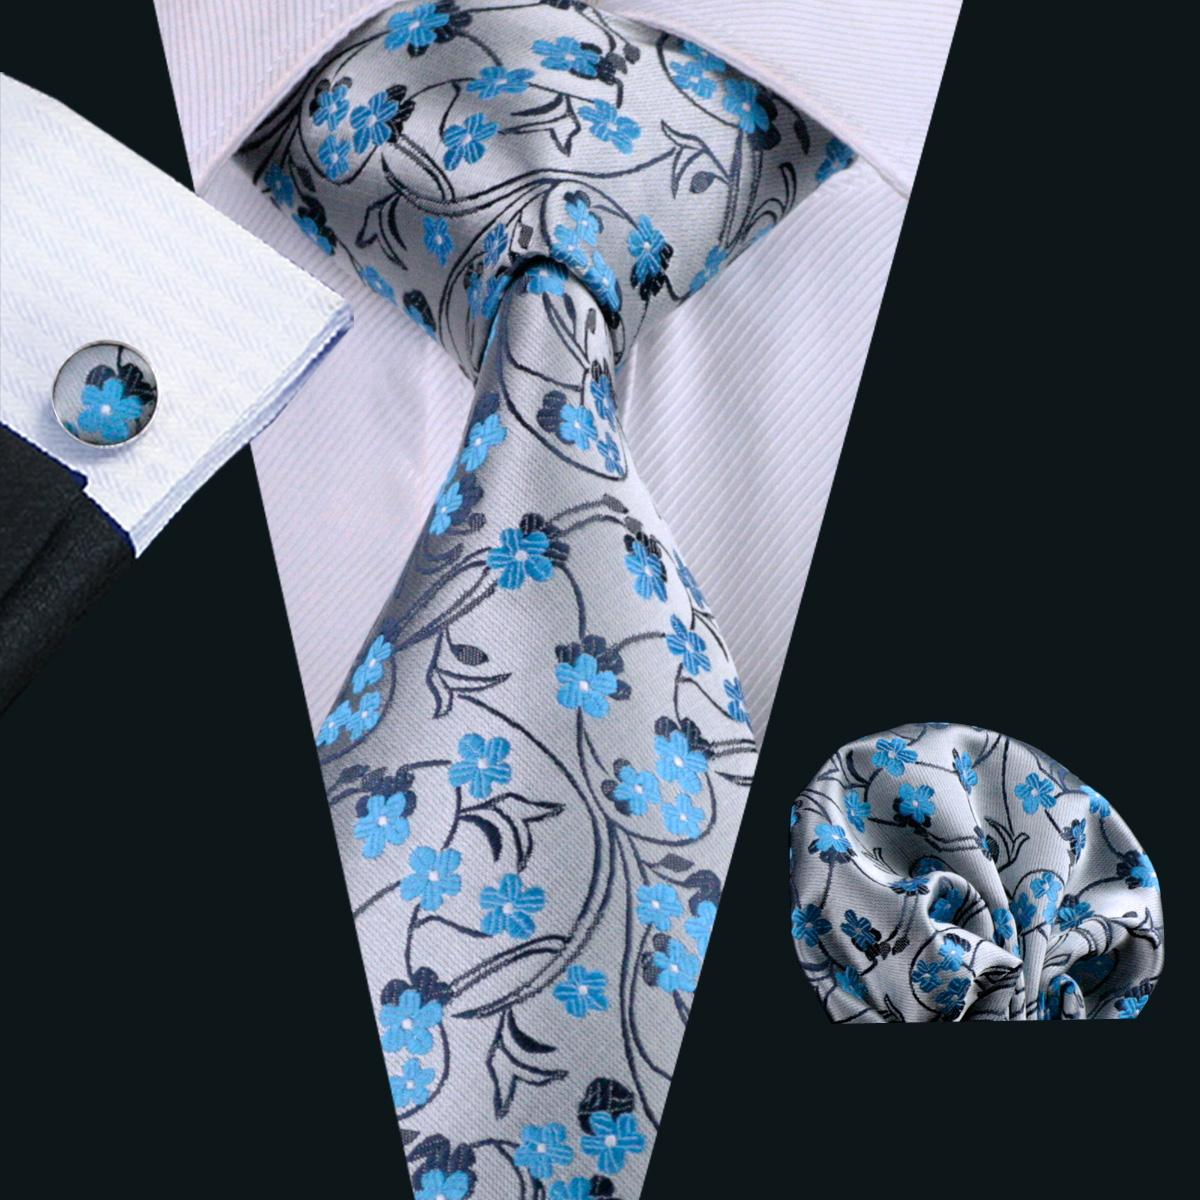 Tie for Men Hankerchief Cufflinks Set Blue Floral Pattern Mens Jacquard Woven Business Necktie 8.5cm Width Casual Set N-0999